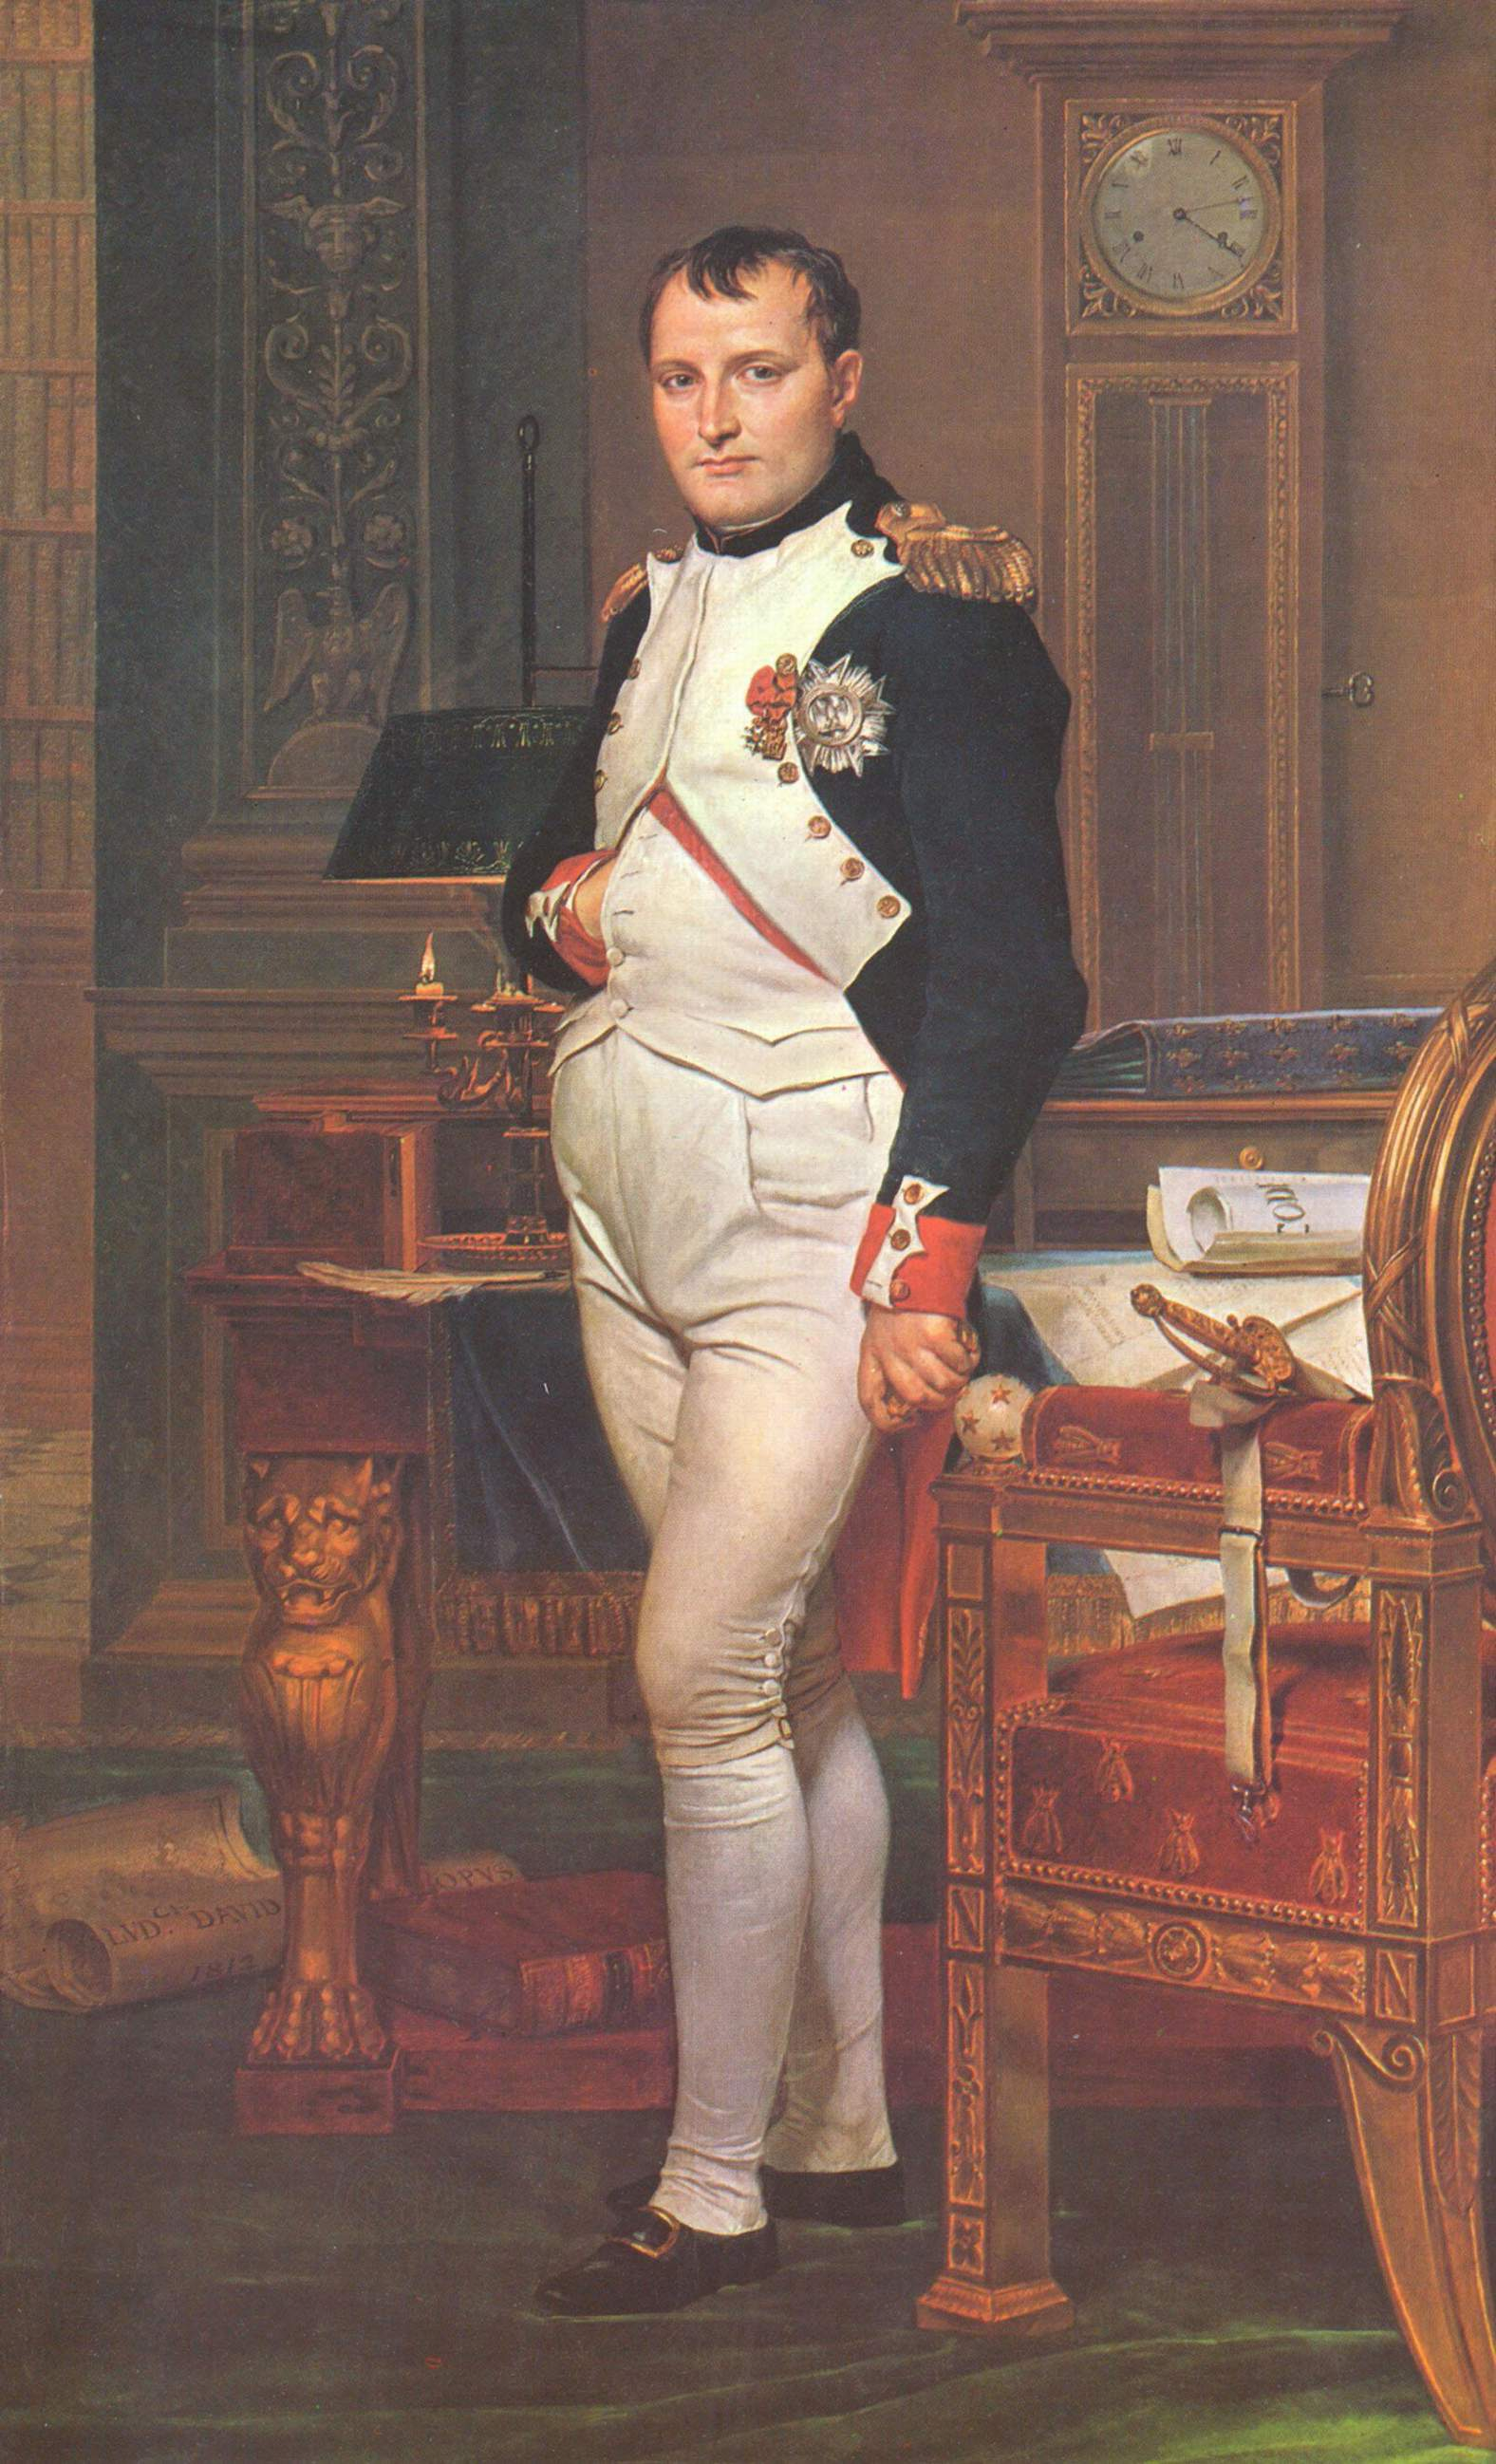 http://upload.wikimedia.org/wikipedia/commons/0/0a/Jacques-Louis_David_017.jpg